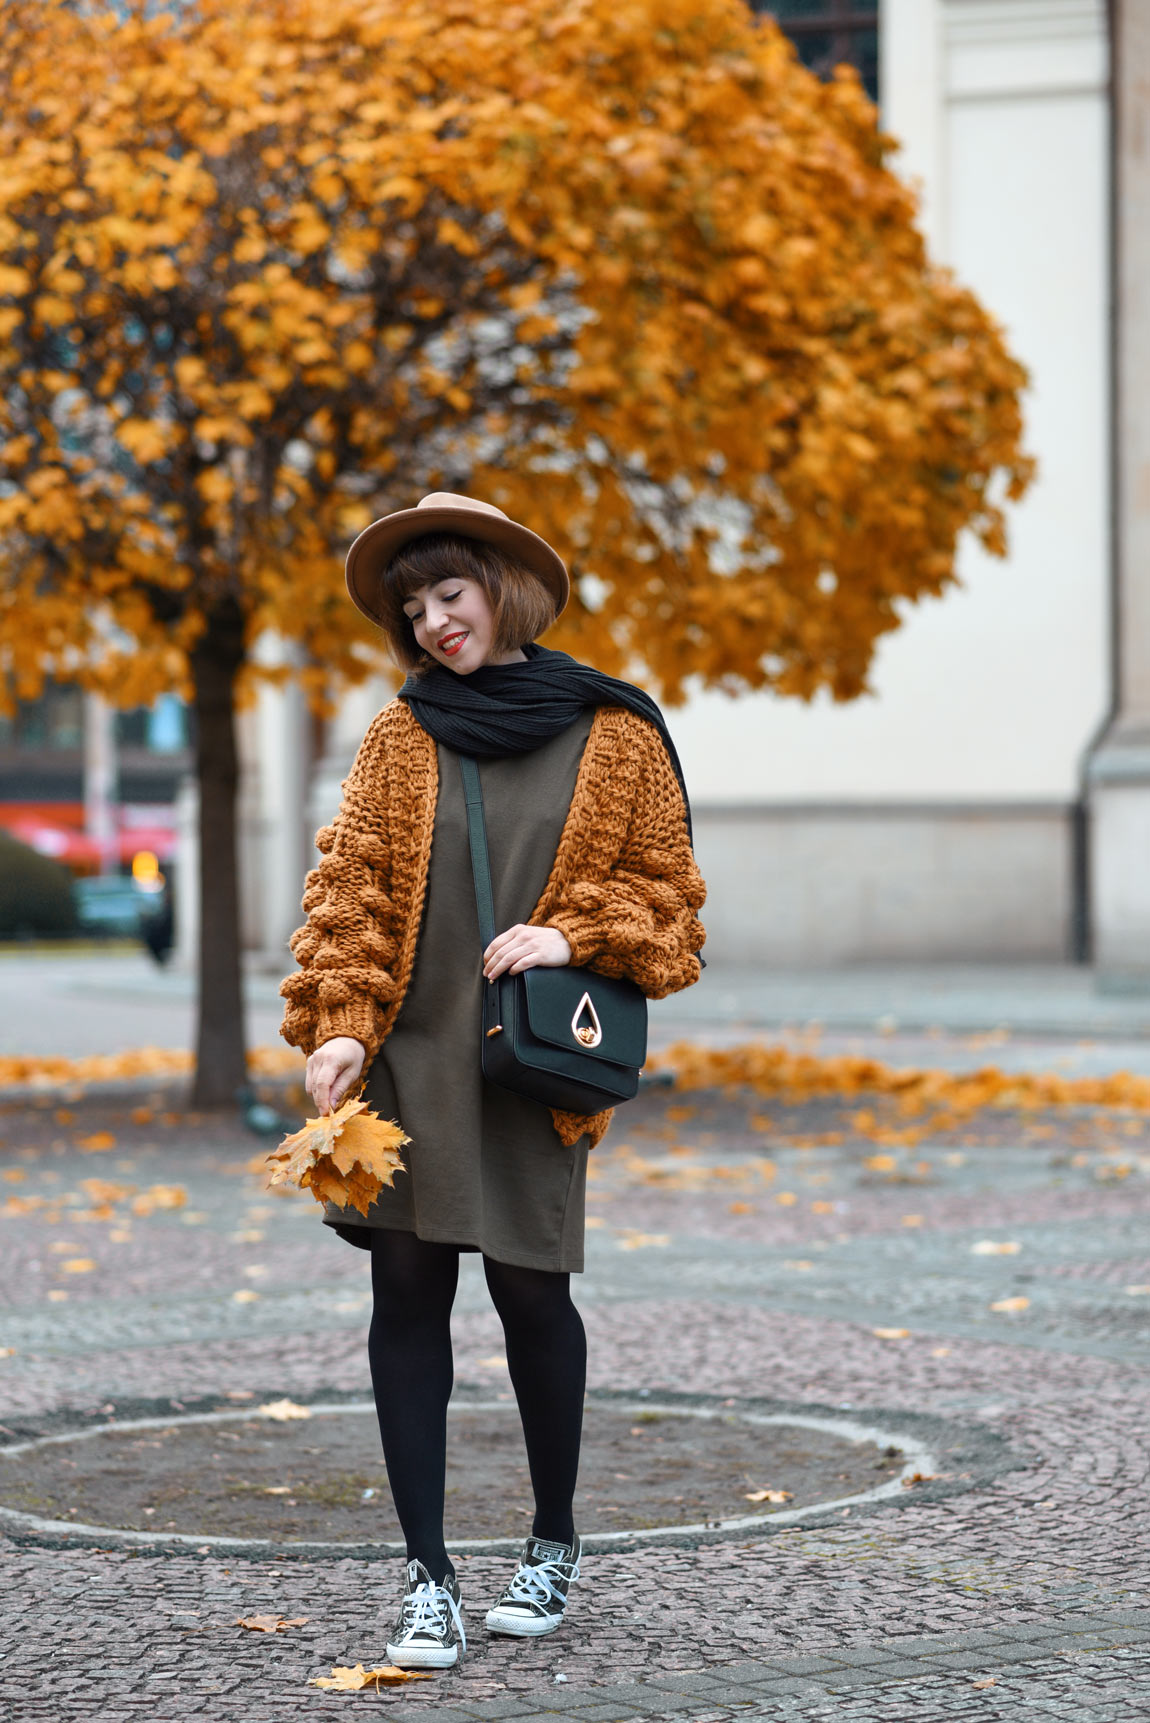 grobstrick, cardigan, strickjacke, berlin, nachgestern, fashionblog, modeblogger, outfit, herbst, fall, mode, streetstyle, suess, vintage, retro, trend